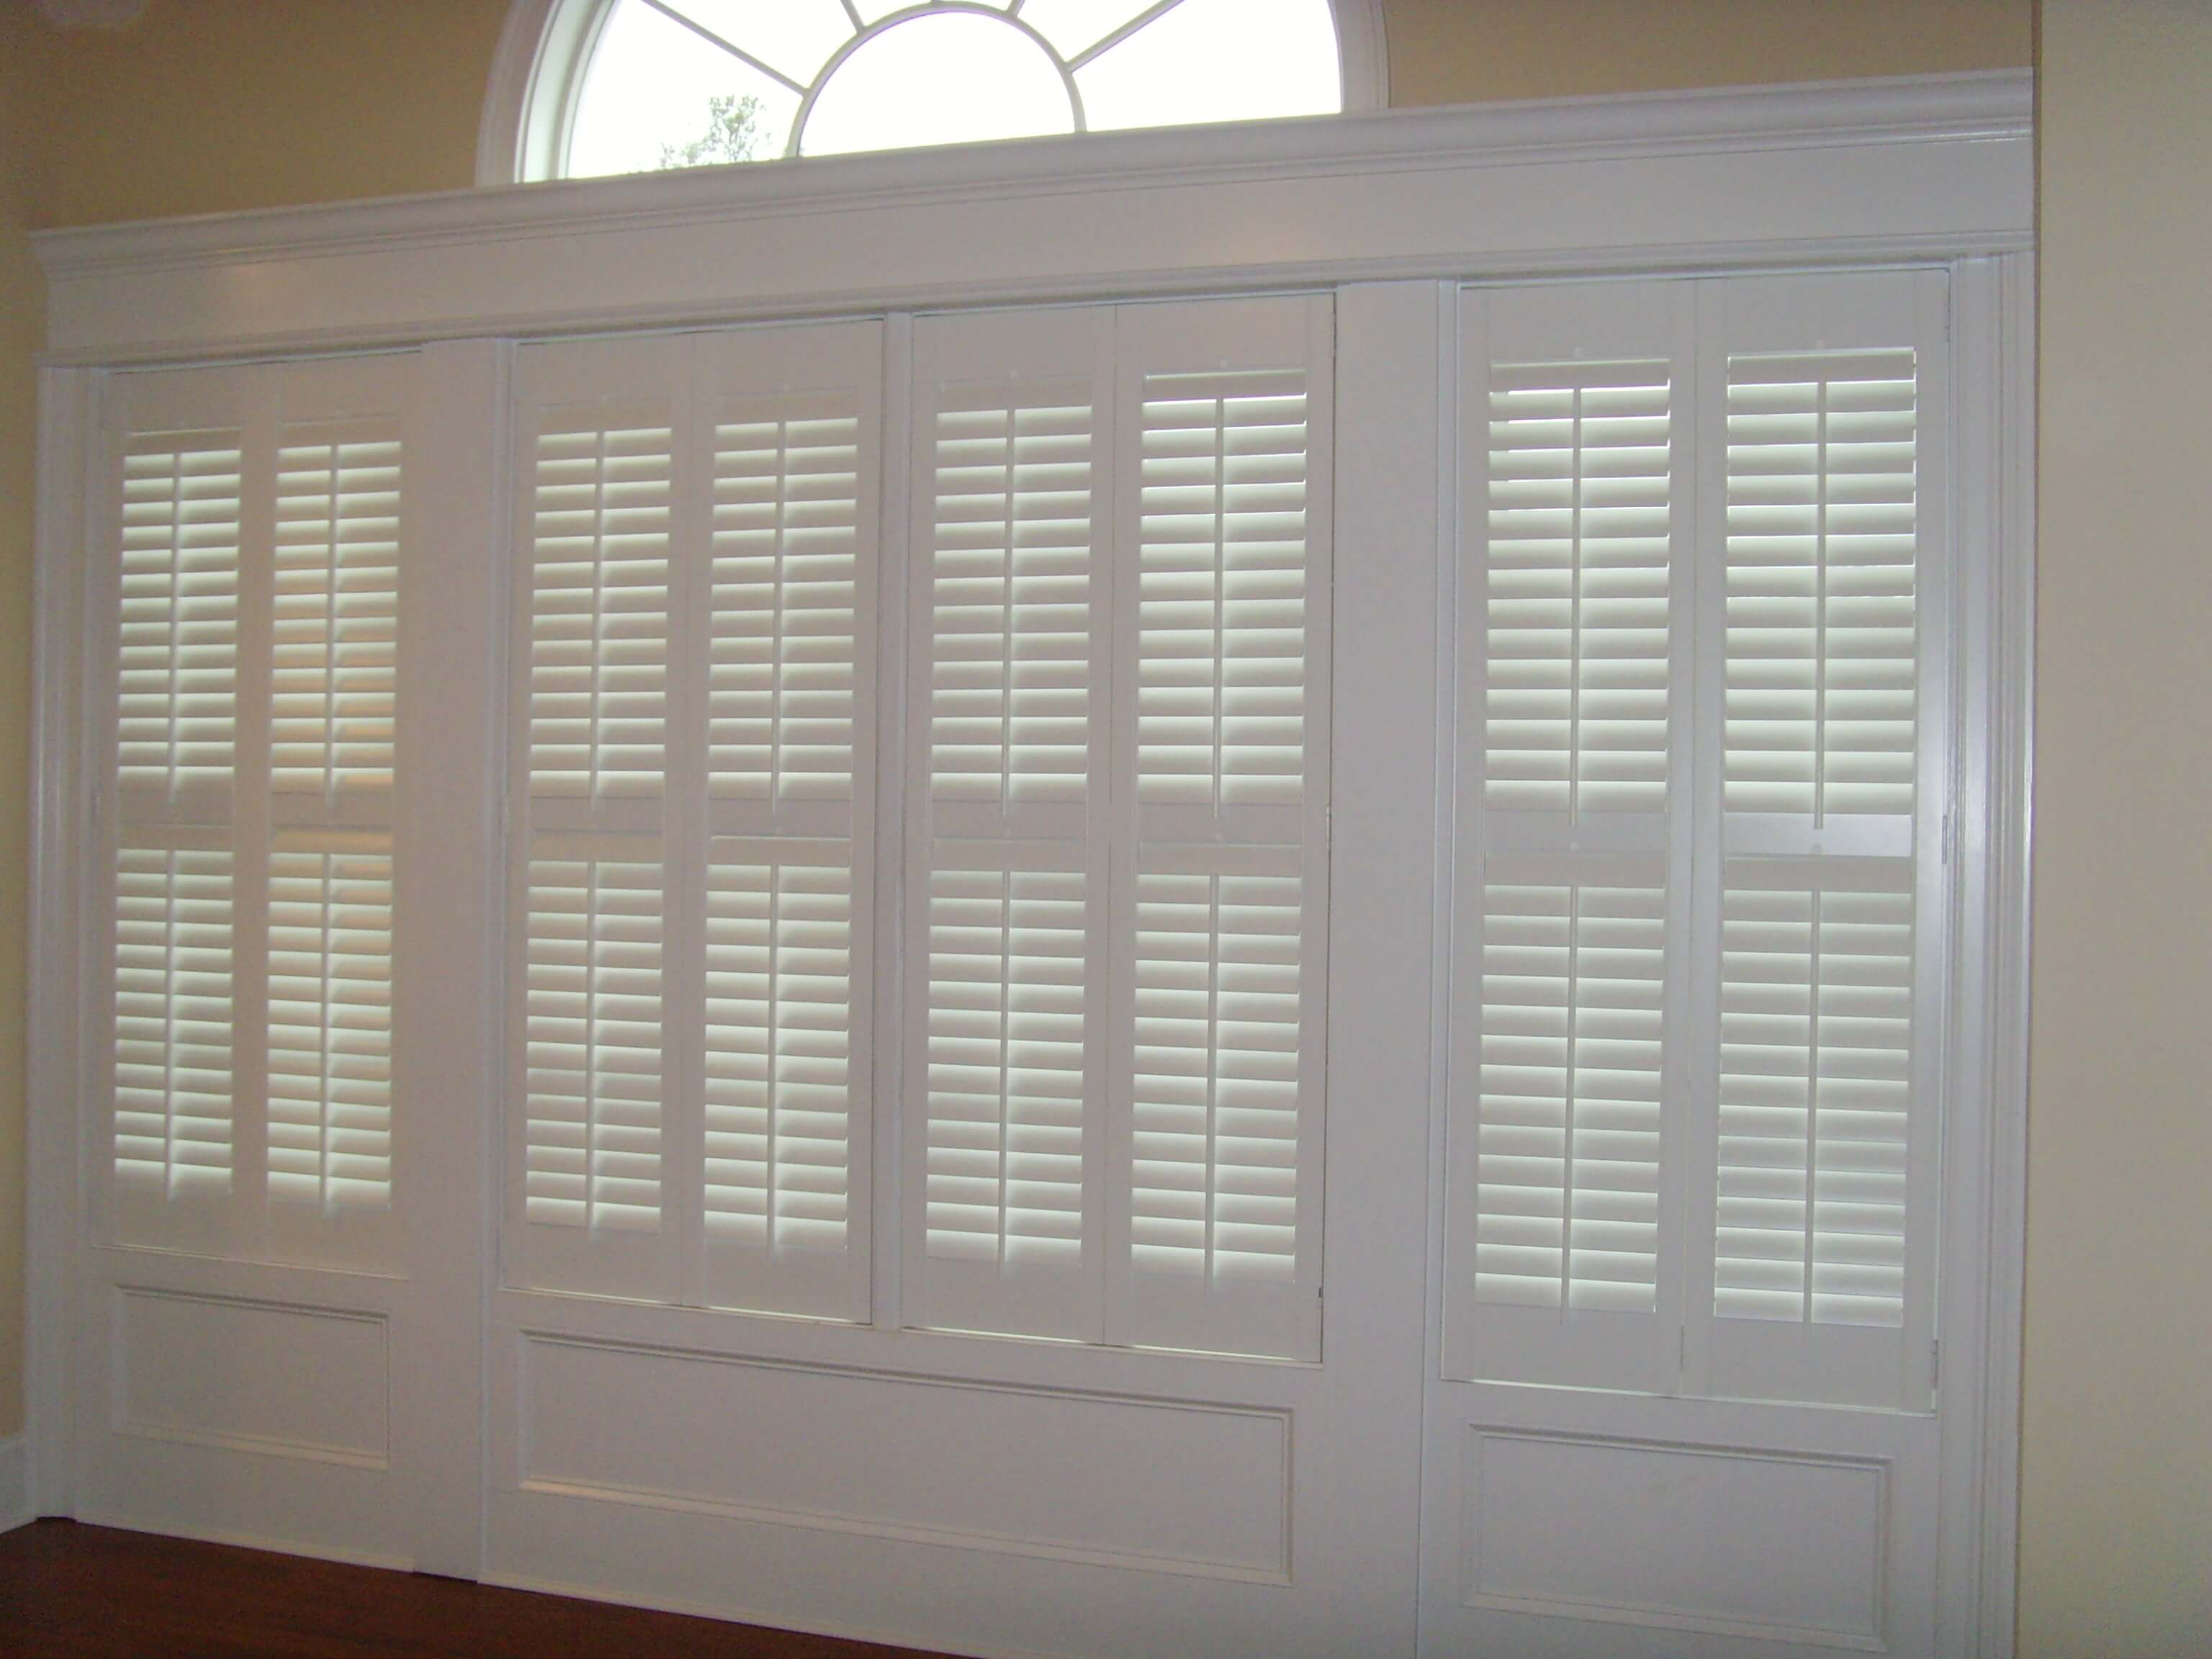 faux shutters window blinds design with custom reviews replacement parts wood horizontal beautiful cellular roller and decor solar home shades for ideas decorating graber